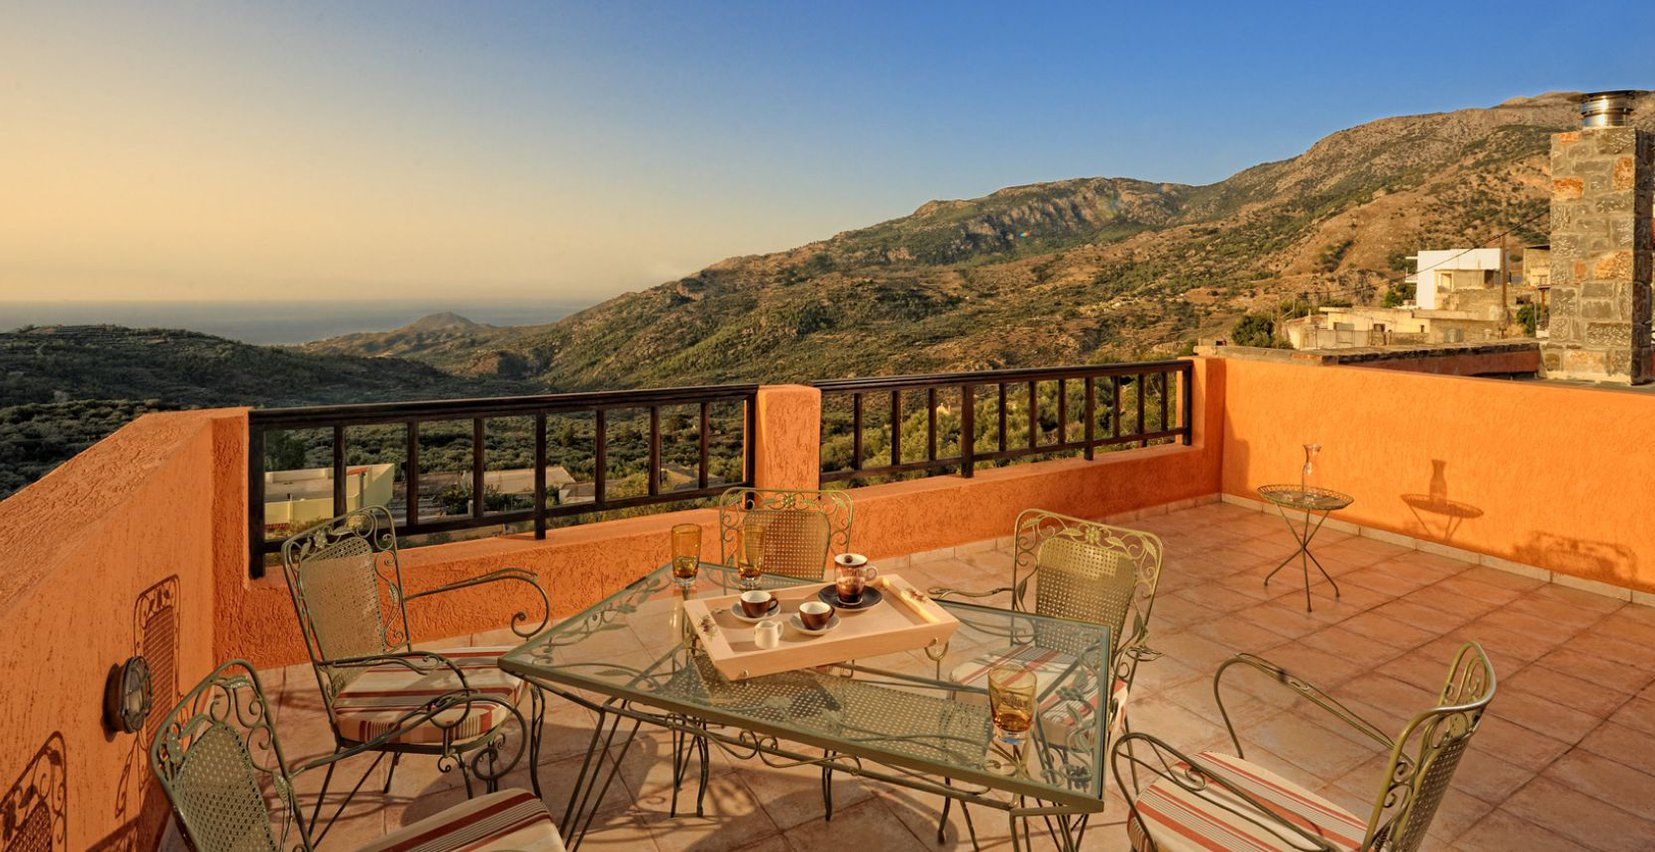 The view of the Malles mountains and the sea from the balcony of the Dittany Love Maisonette of Mala Villa